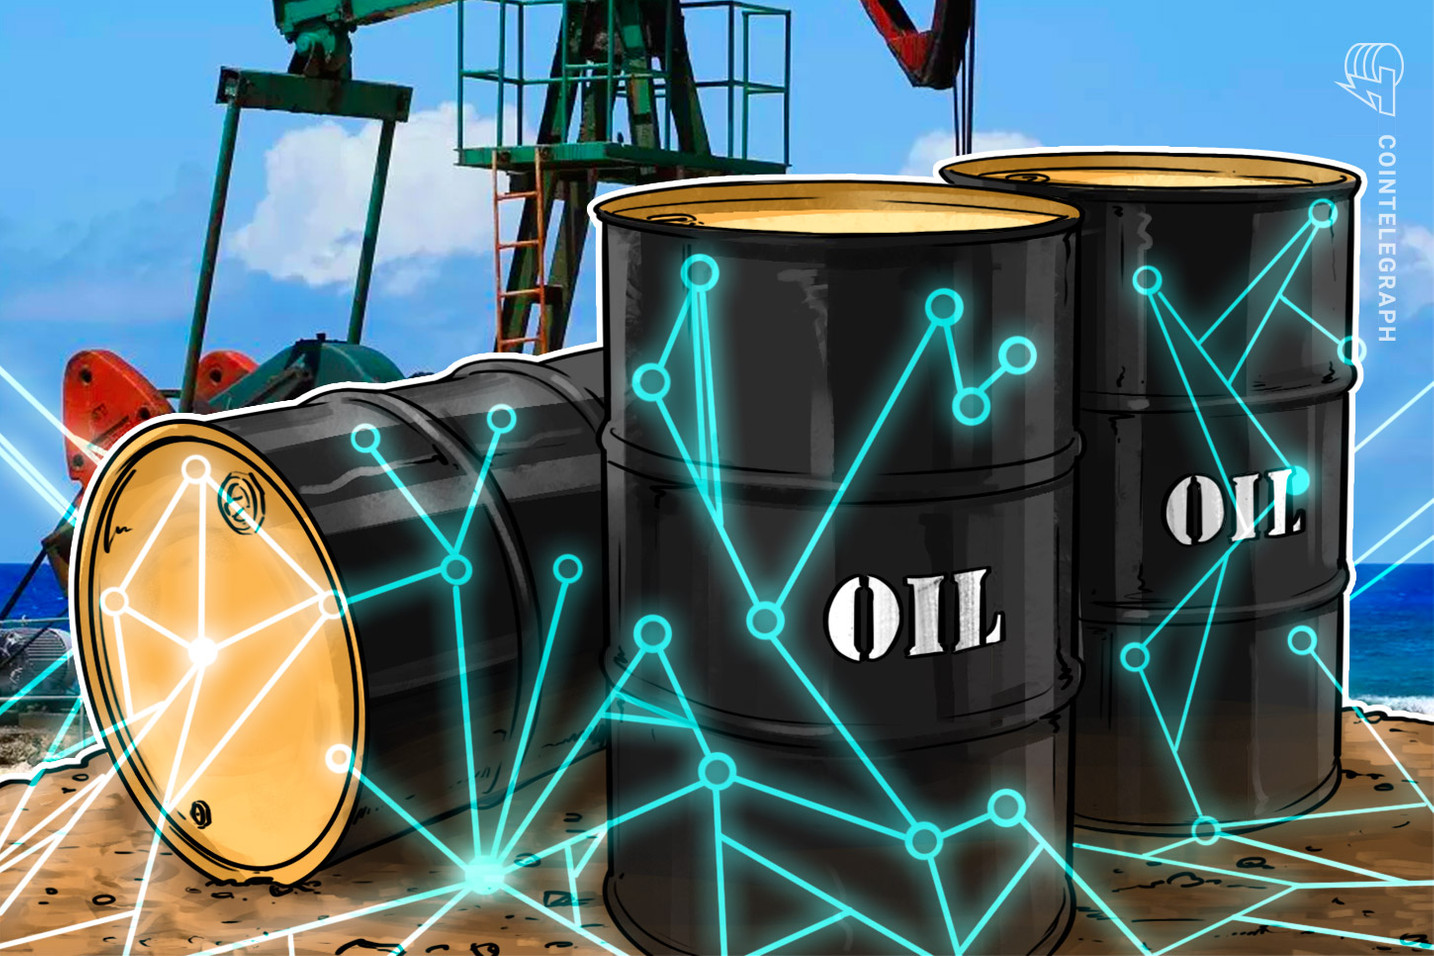 Spanish Energy Firm Repsol Claims Blockchain Can Help It Save 400,000 Euro per Year